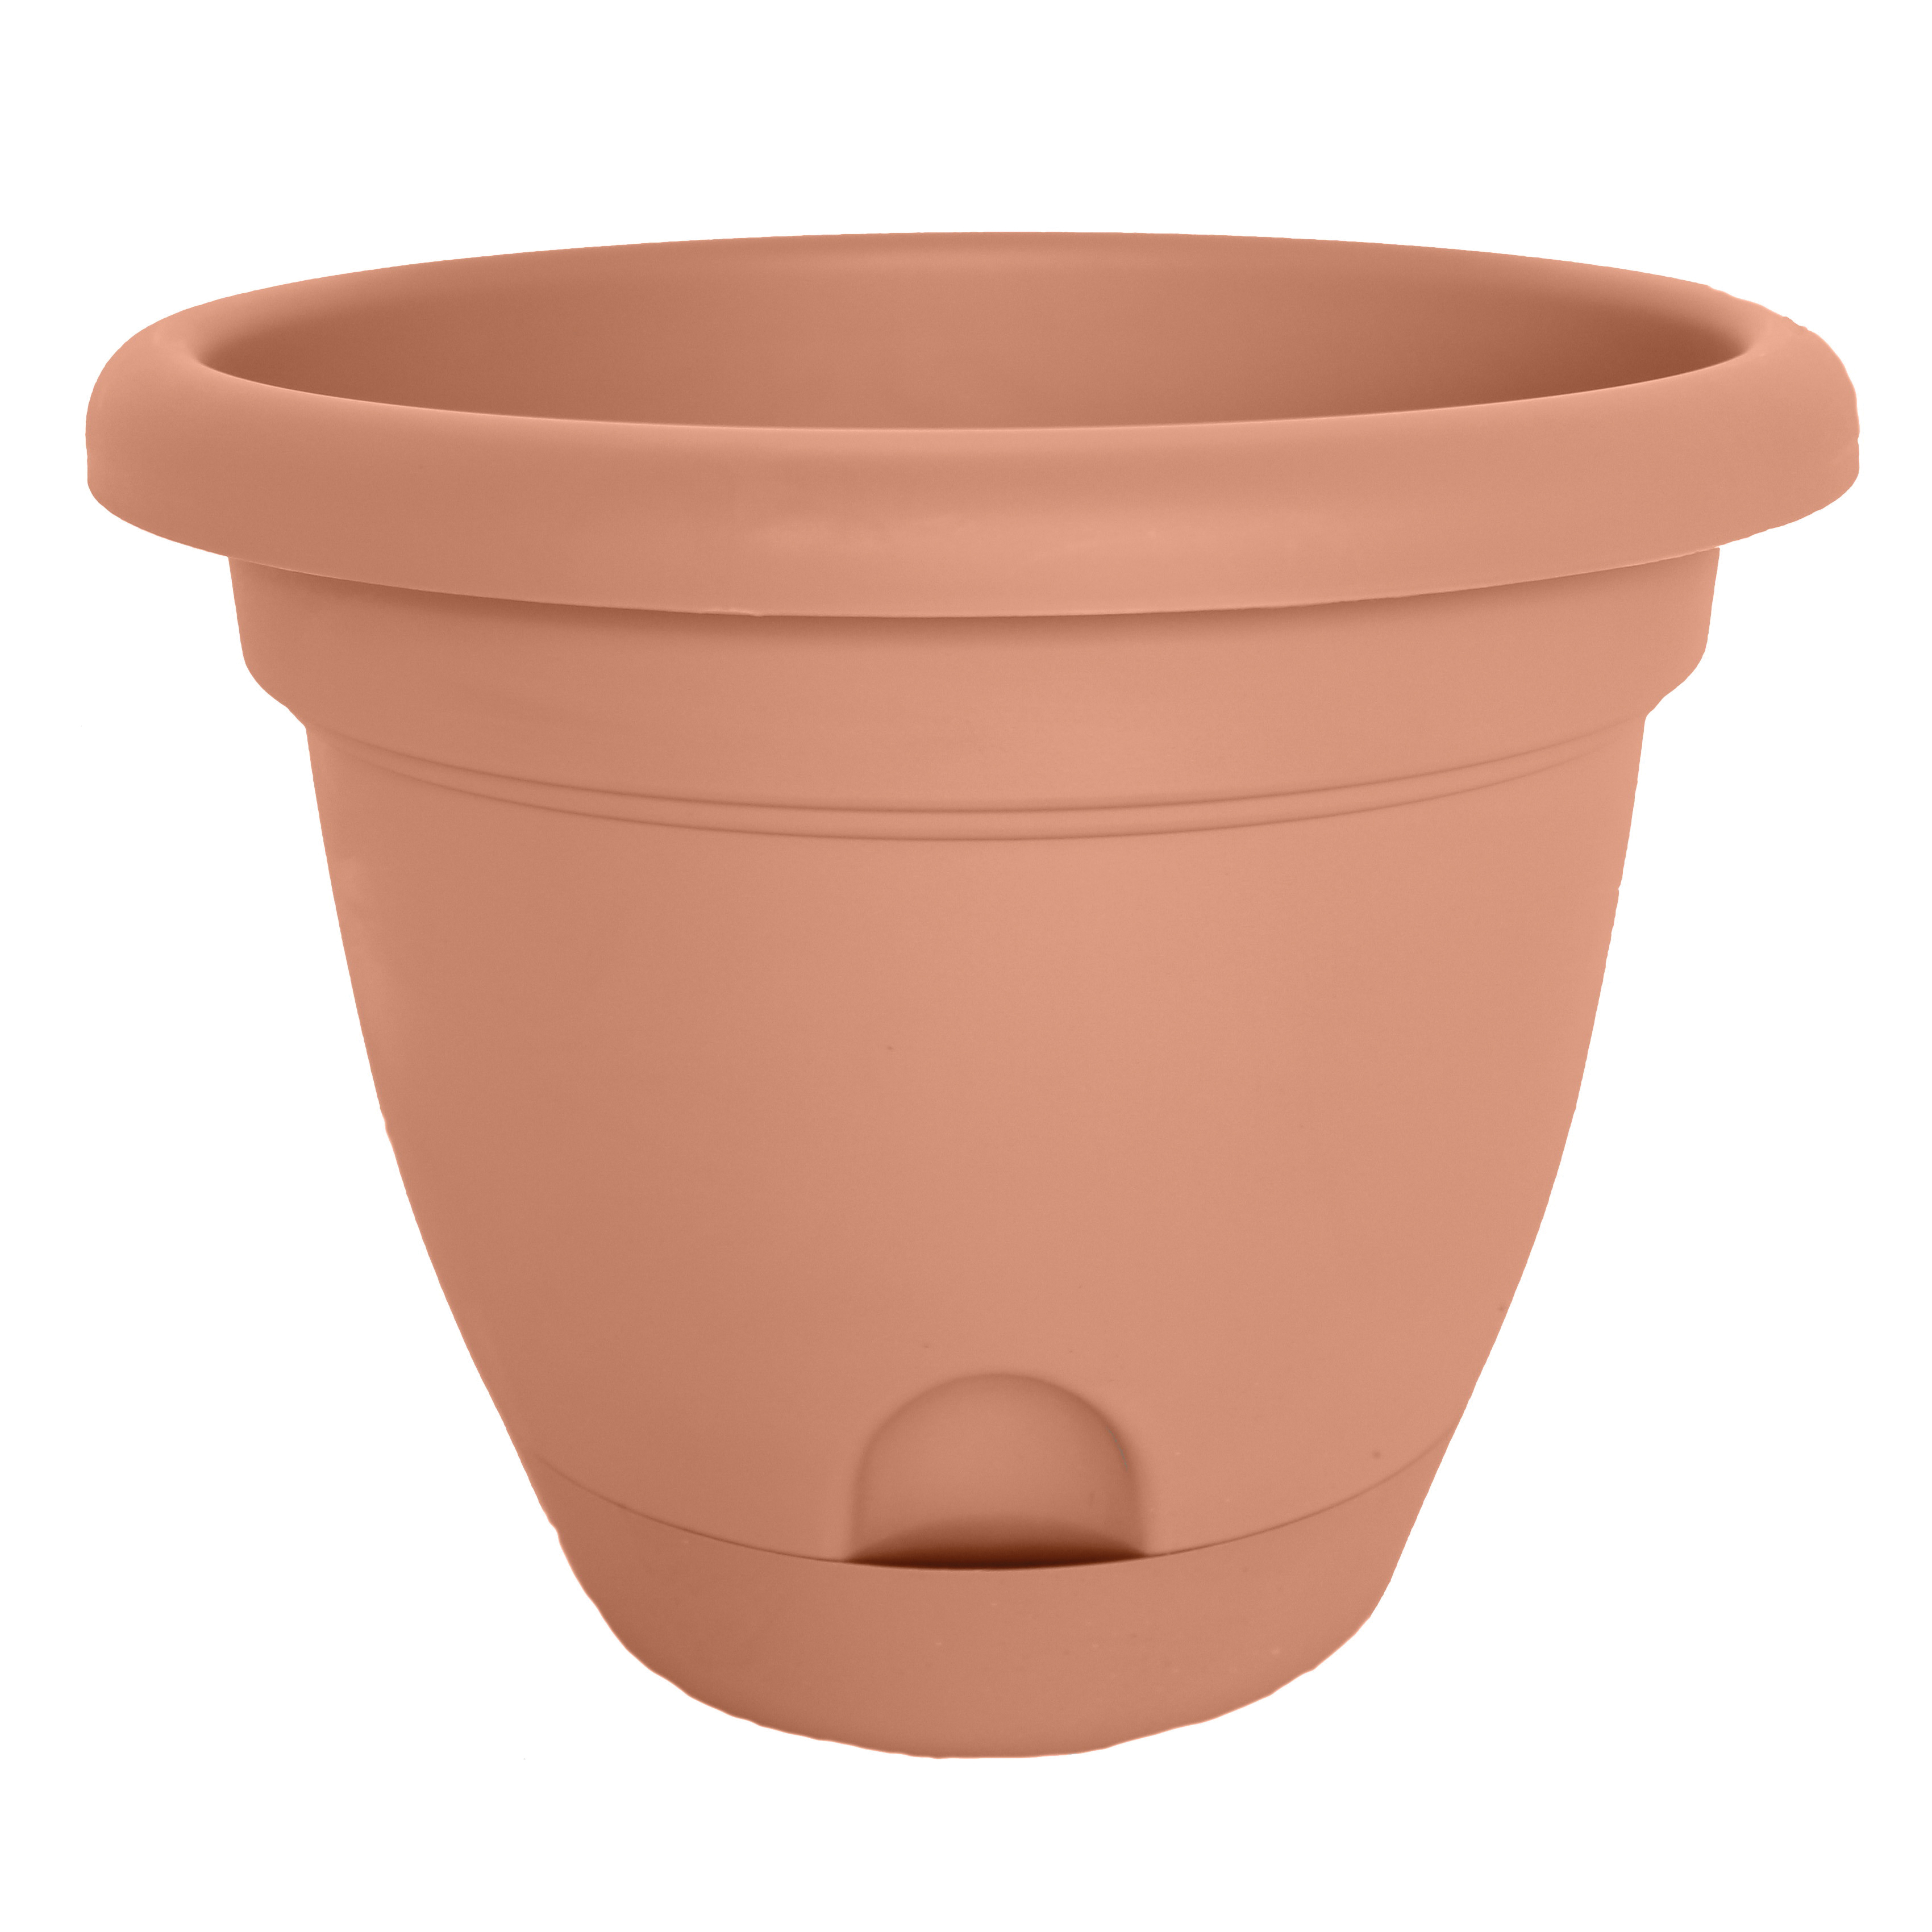 Picture of Bloem Lucca LP1246 Planter, 10.8 in W, Round, Polypropylene, Terracotta